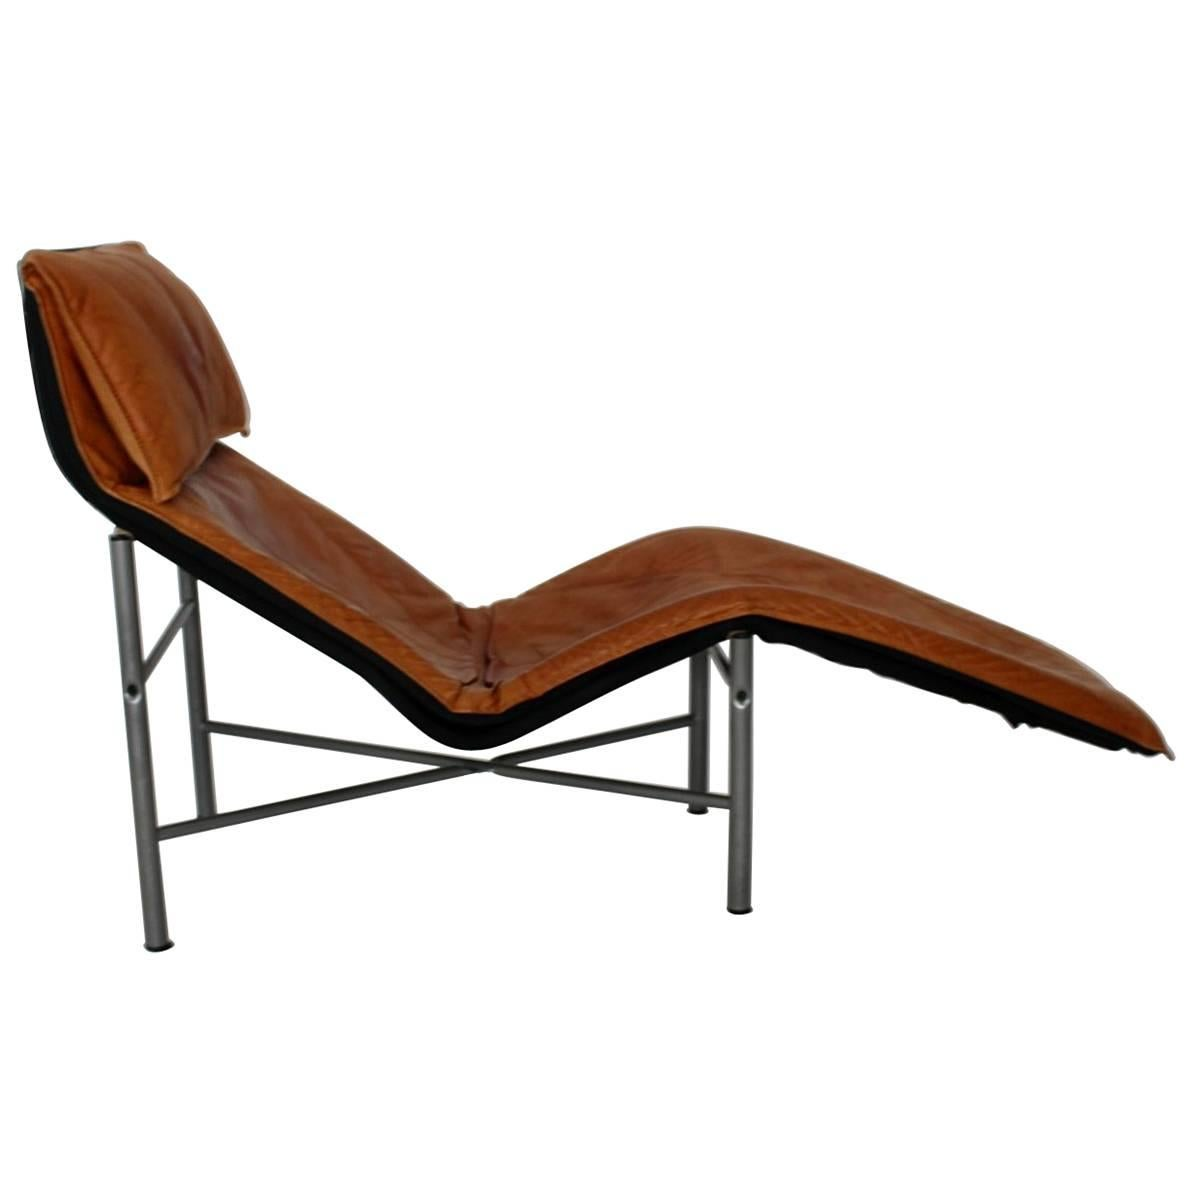 Cognac Leather Chaise Longue by Tord Bjorklund 1970 Sweden 1  sc 1 st  1stDibs : chaise lon - Sectionals, Sofas & Couches